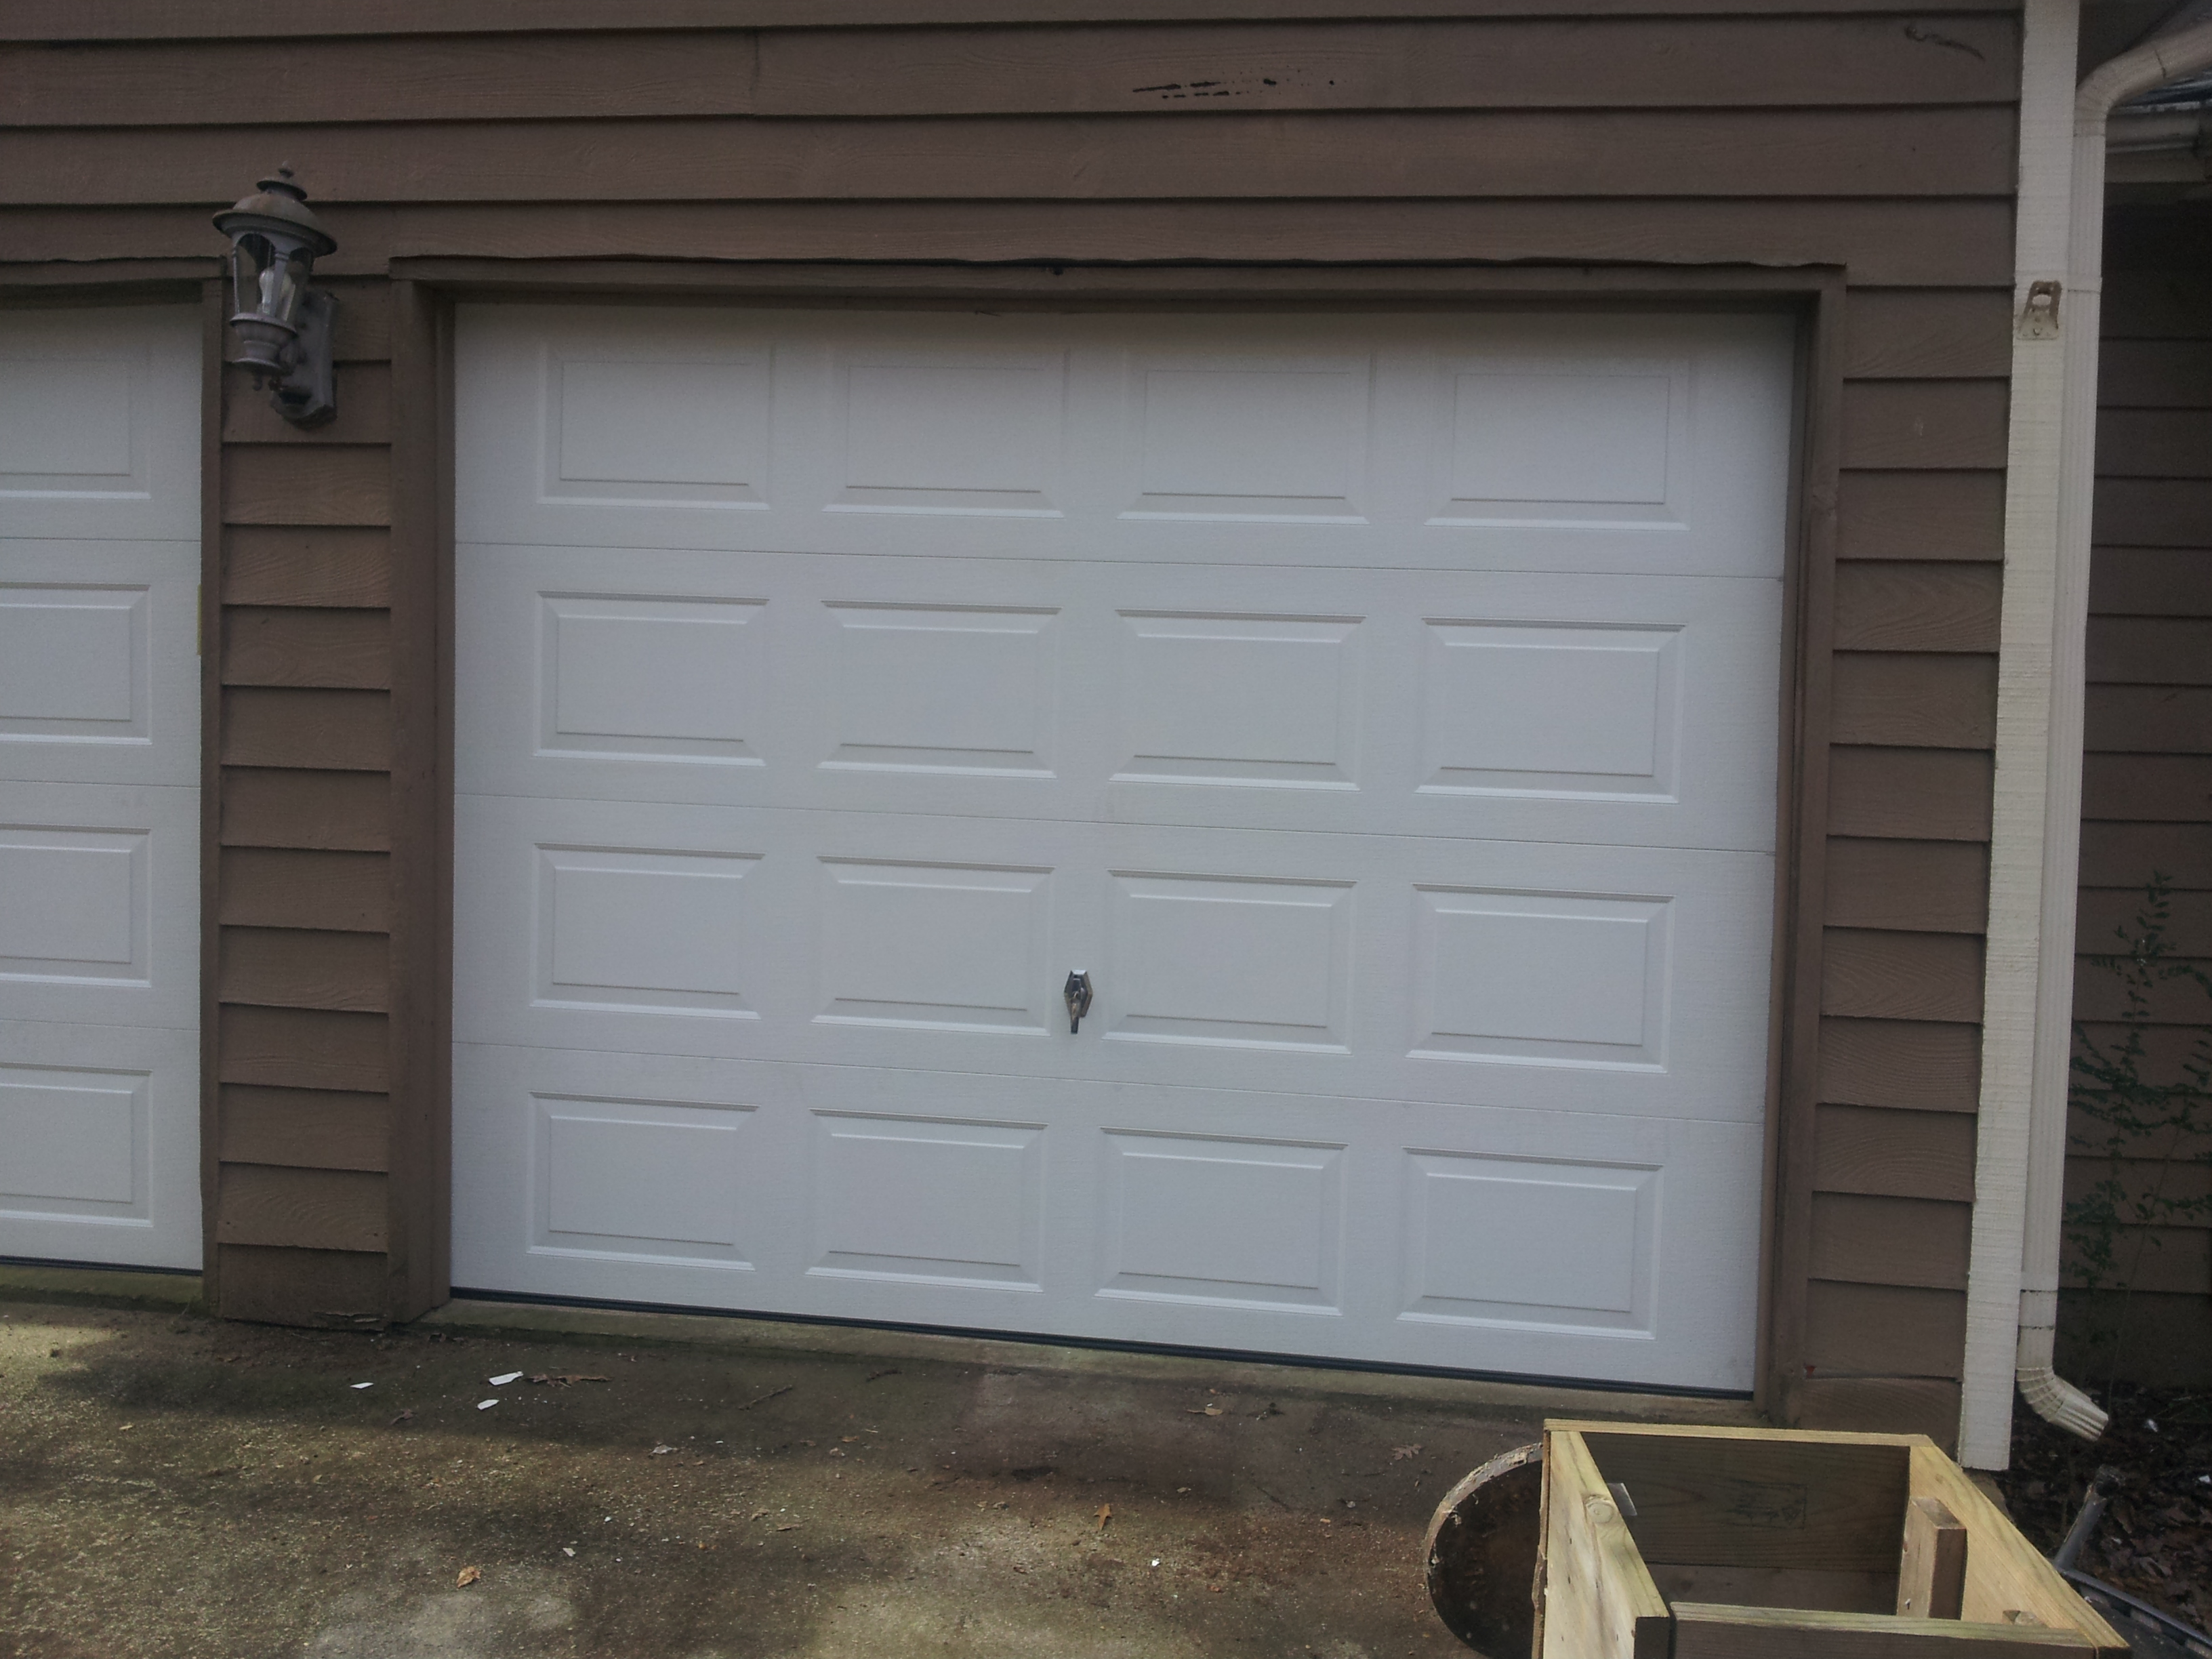 2448 #81704A Garage Door Sales In Atlanta GA. Garage Door Repair Atlanta  picture/photo Overhead Doors Atlanta 36593264